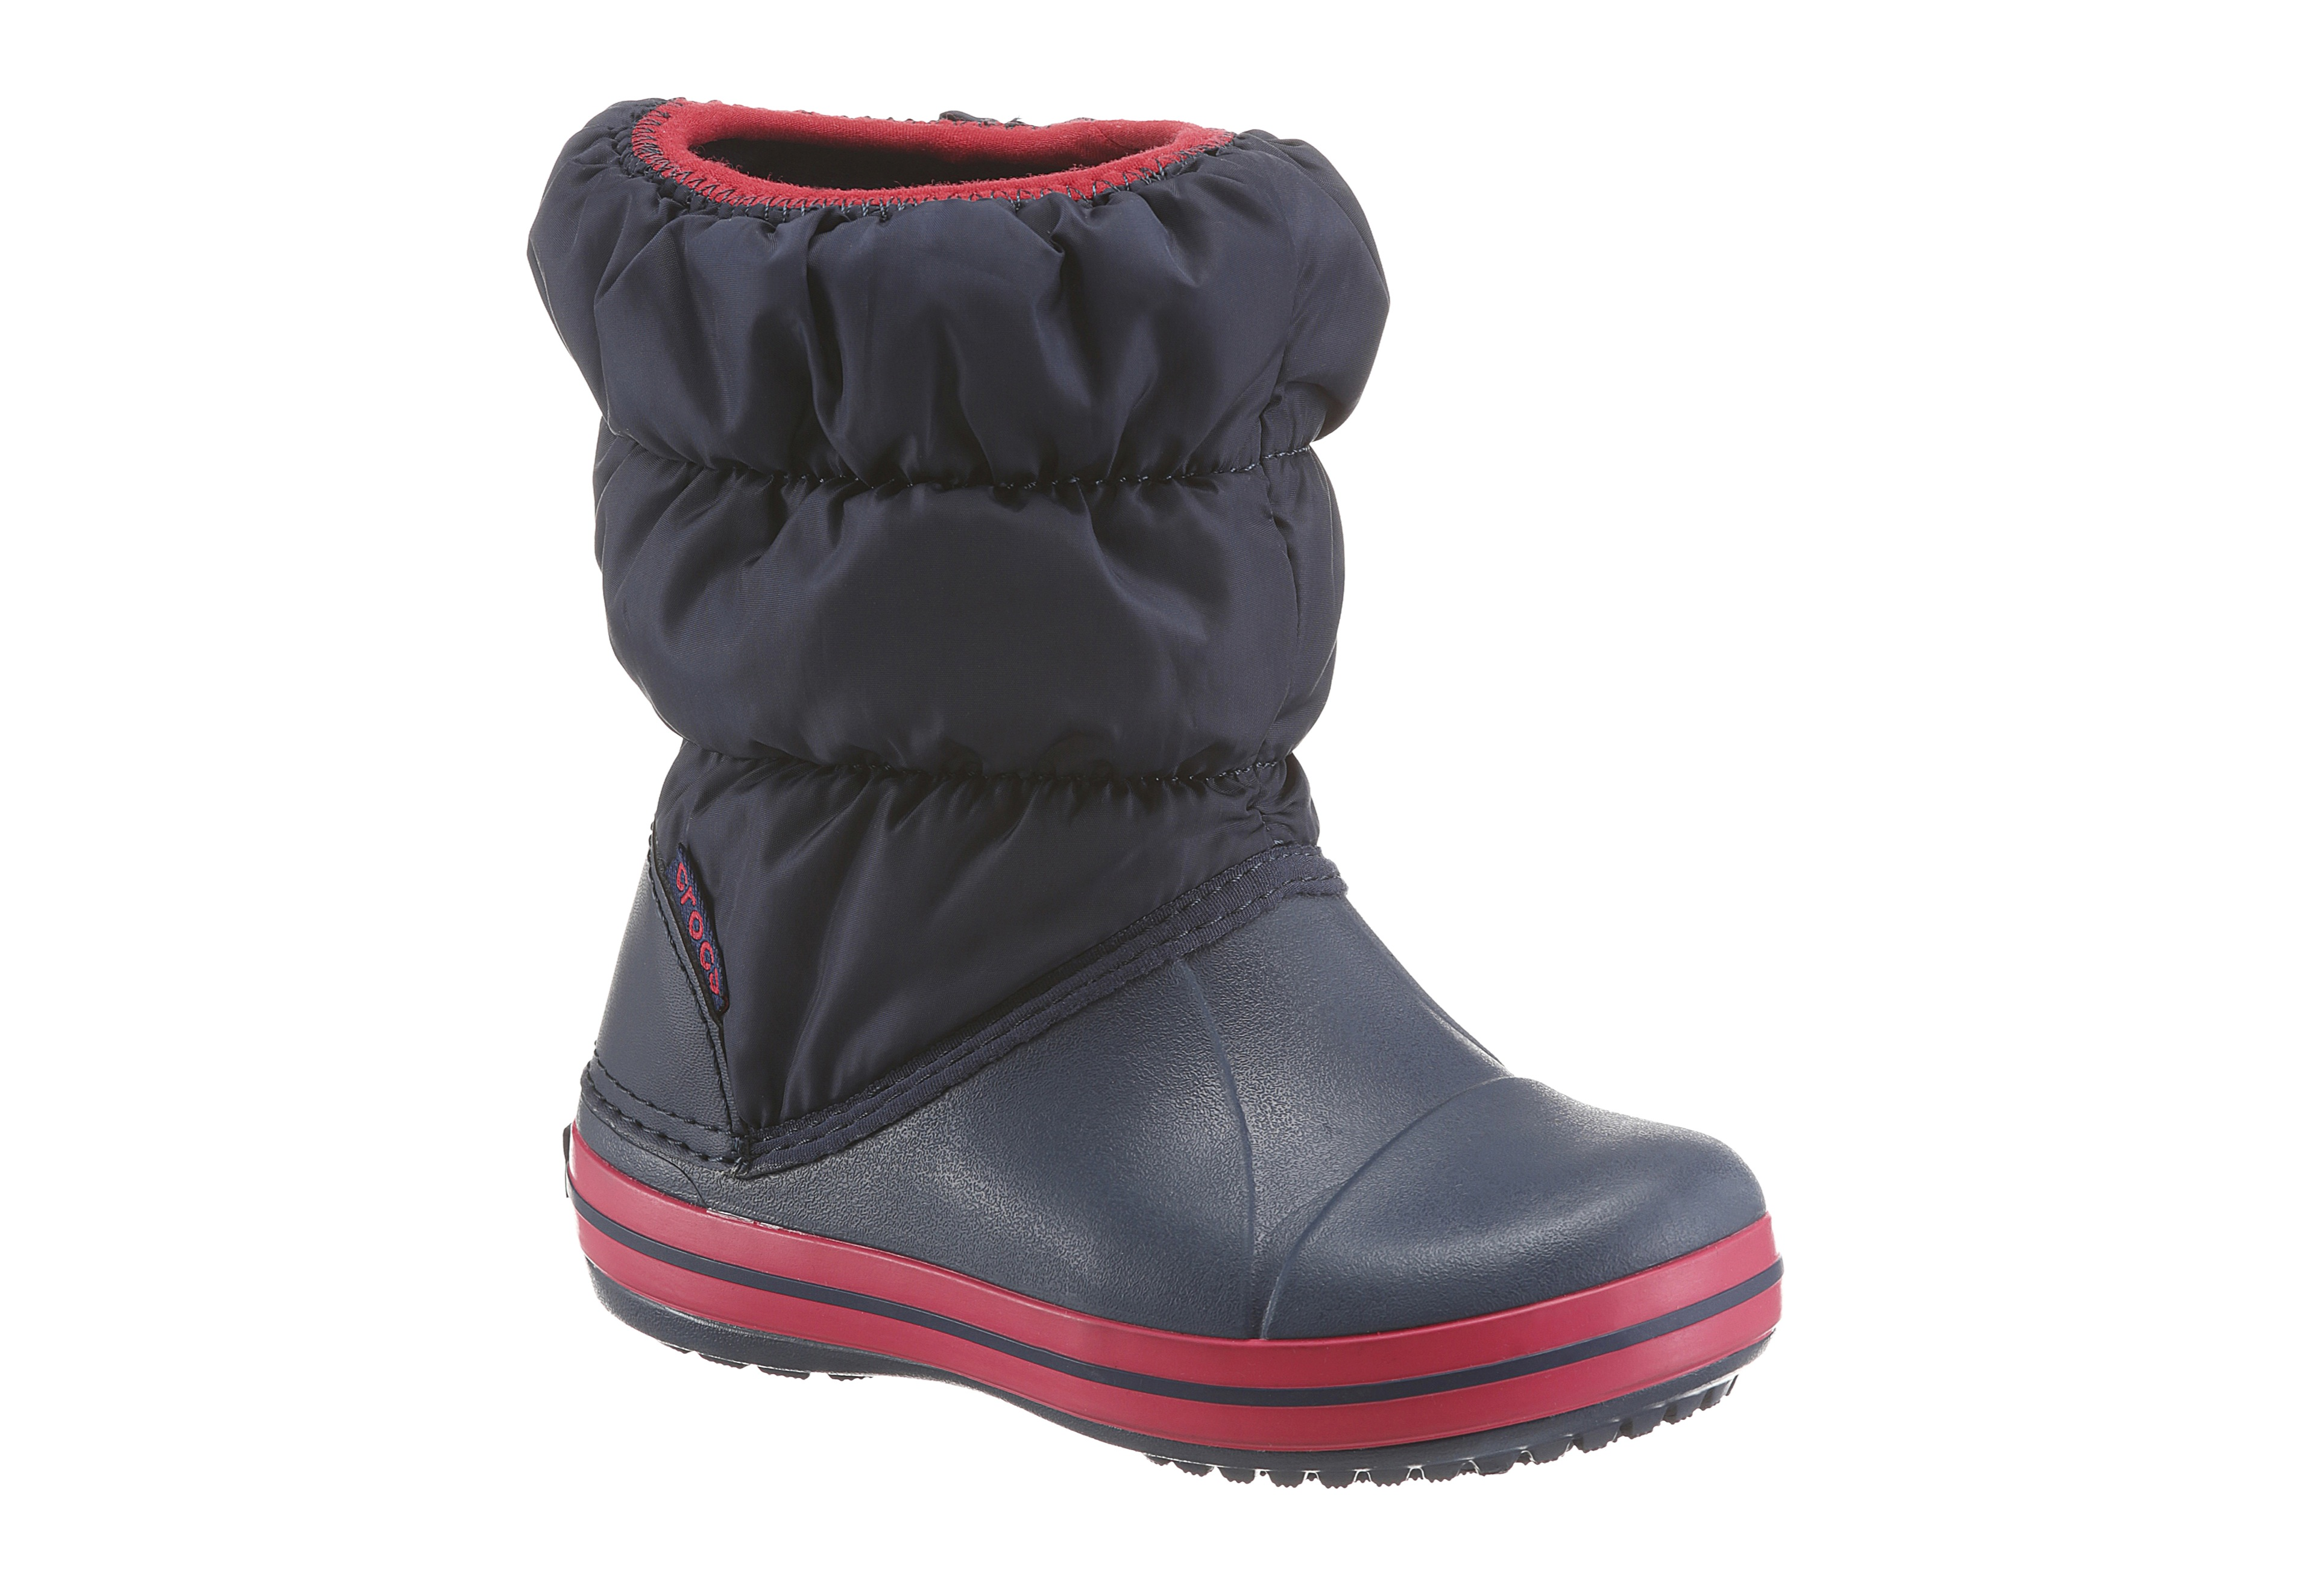 finest selection 1cb03 f7f84 Crocs Stiefel »Winter Puff Boots Kids« günstig kaufen | BAUR